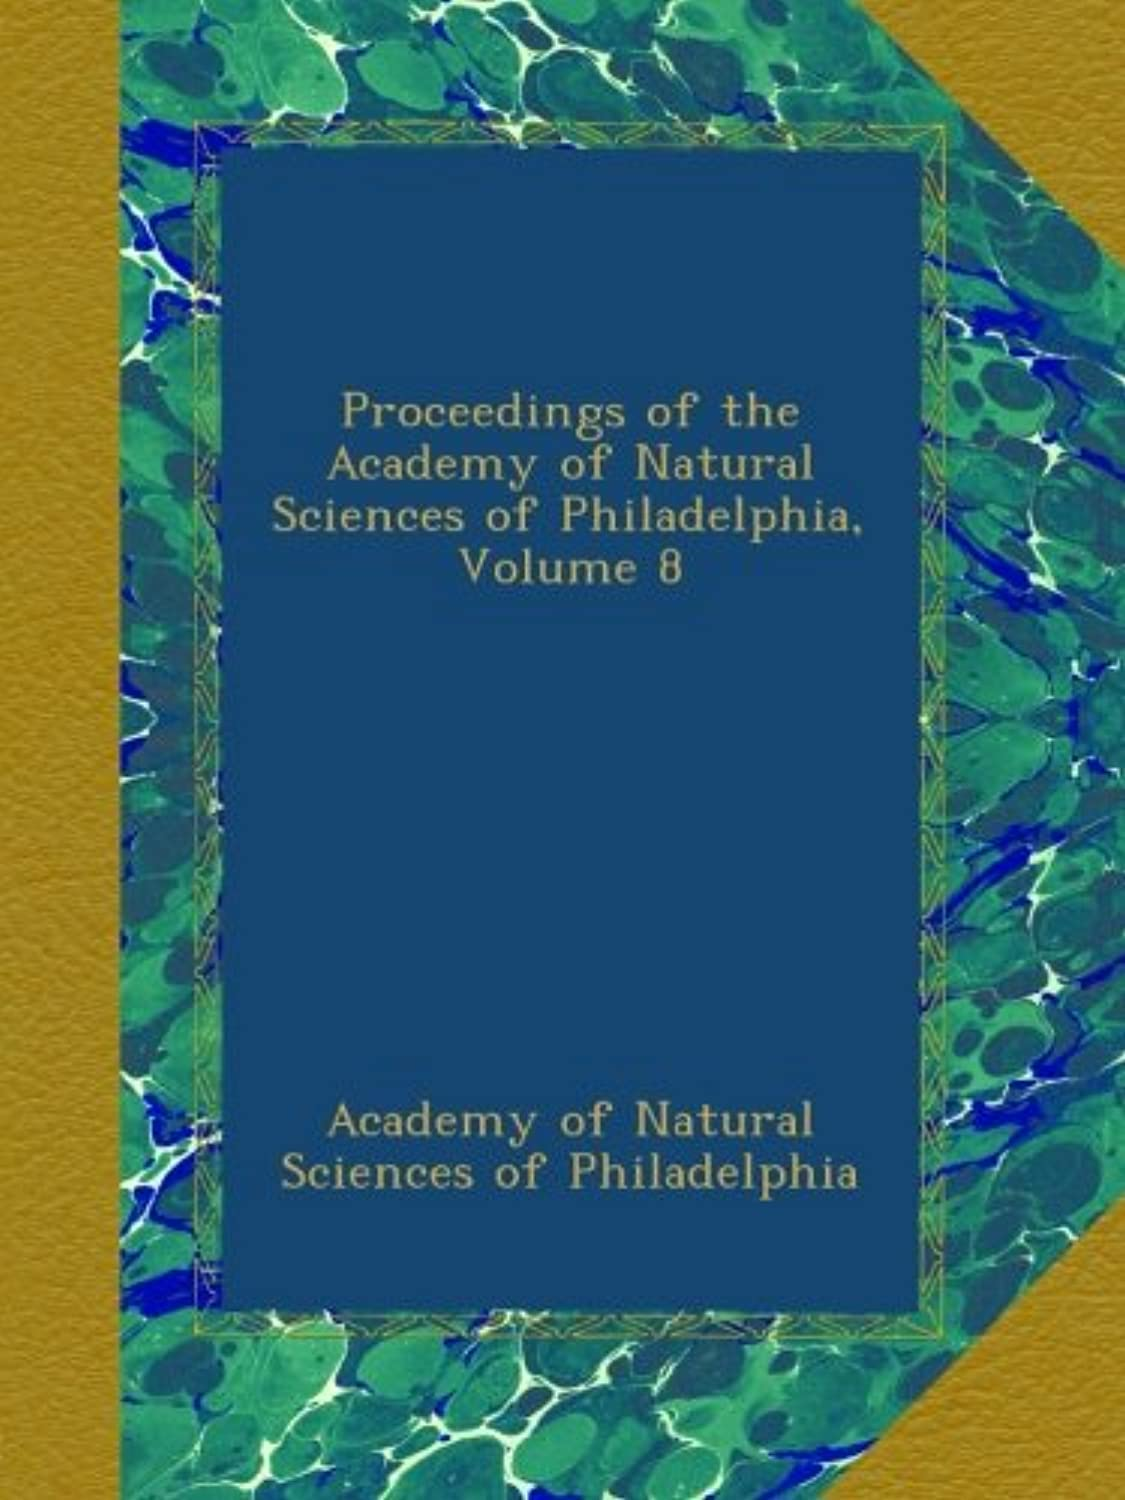 Proceedings of the Academy of Natural Sciences of Philadelphia, Volume 8